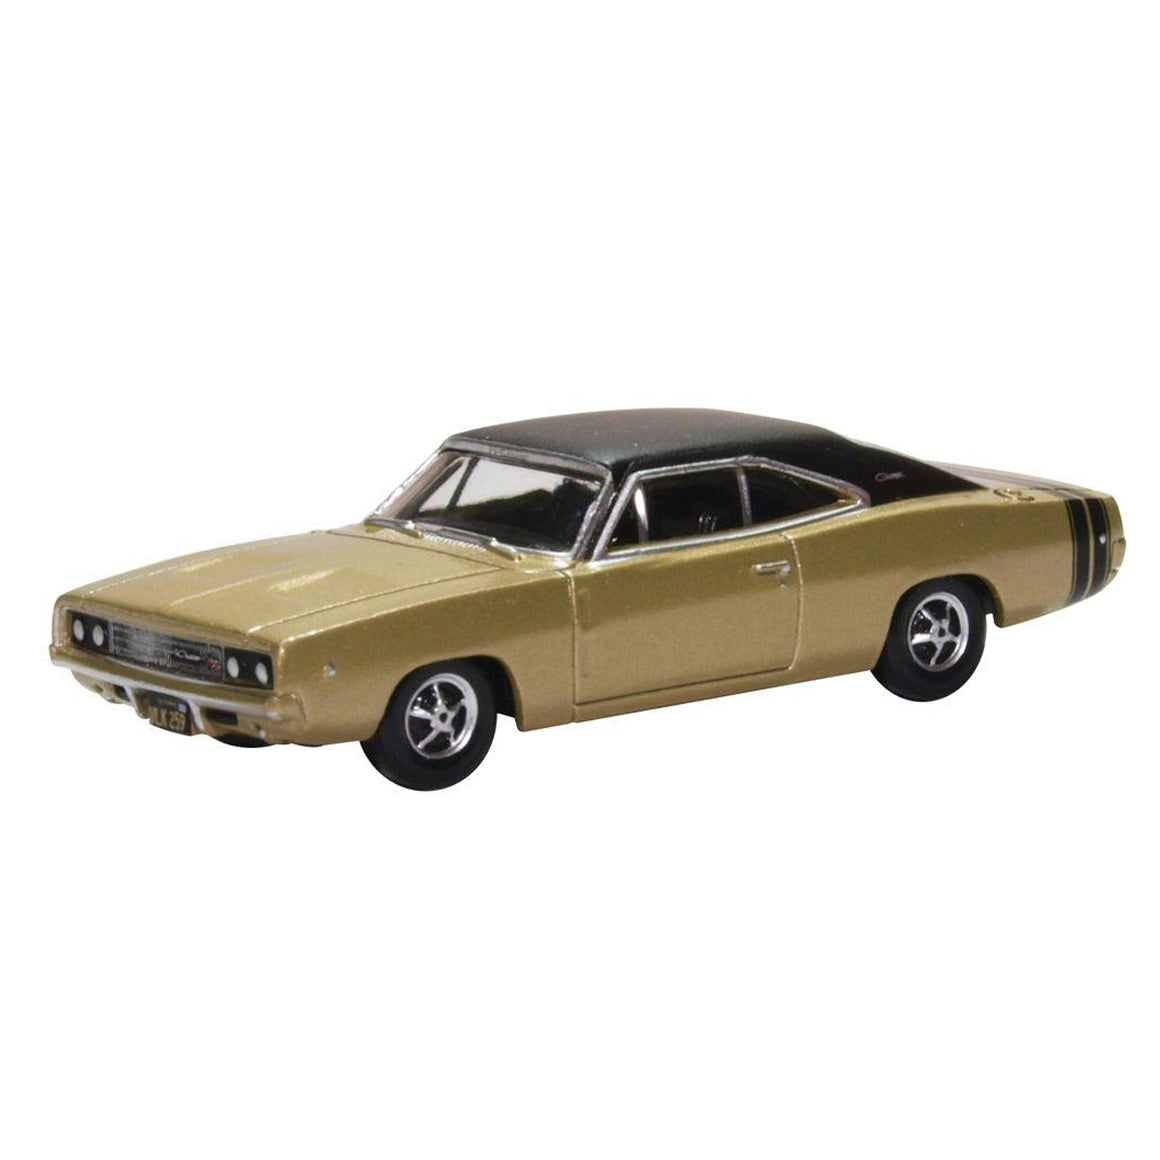 HO Scale: 1968 Dodge Charger - Gold w/ Black Stripes